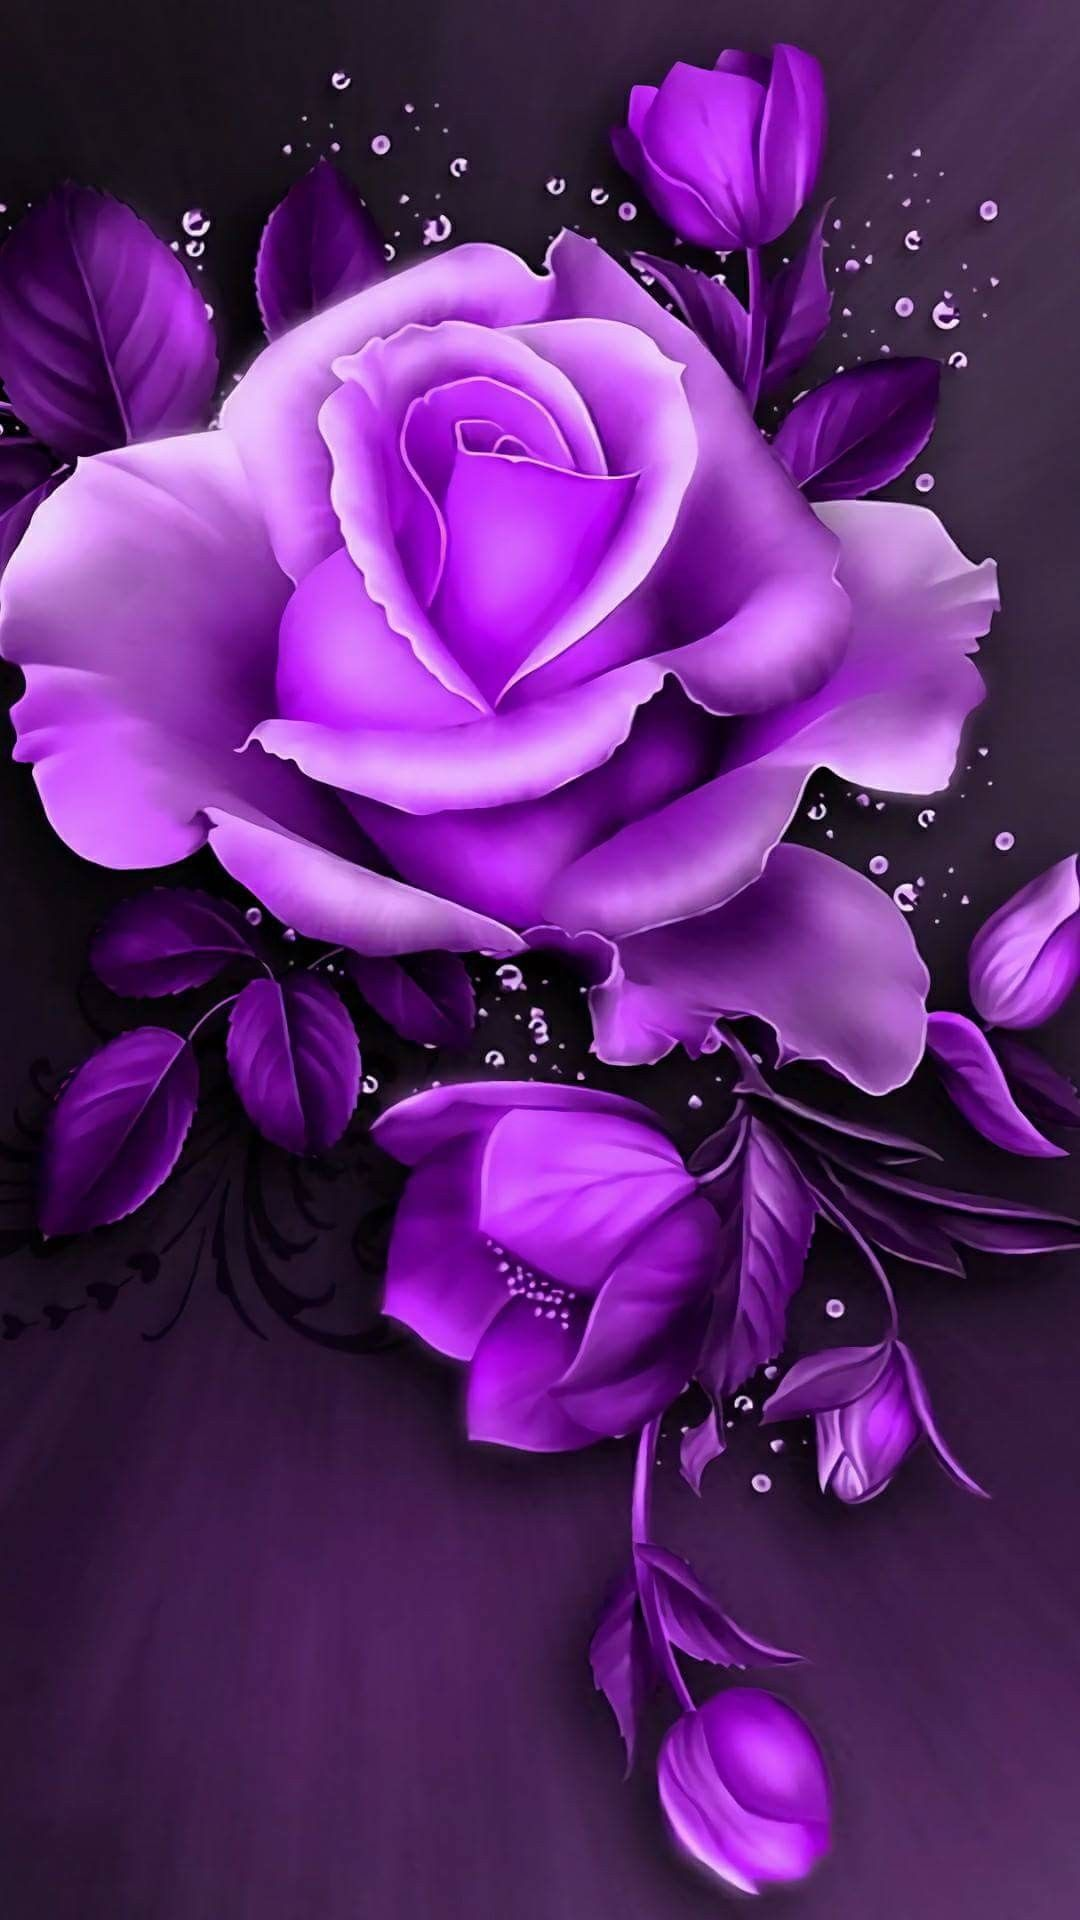 Purple Roses Background Images: Pin By April Reiber On Purple